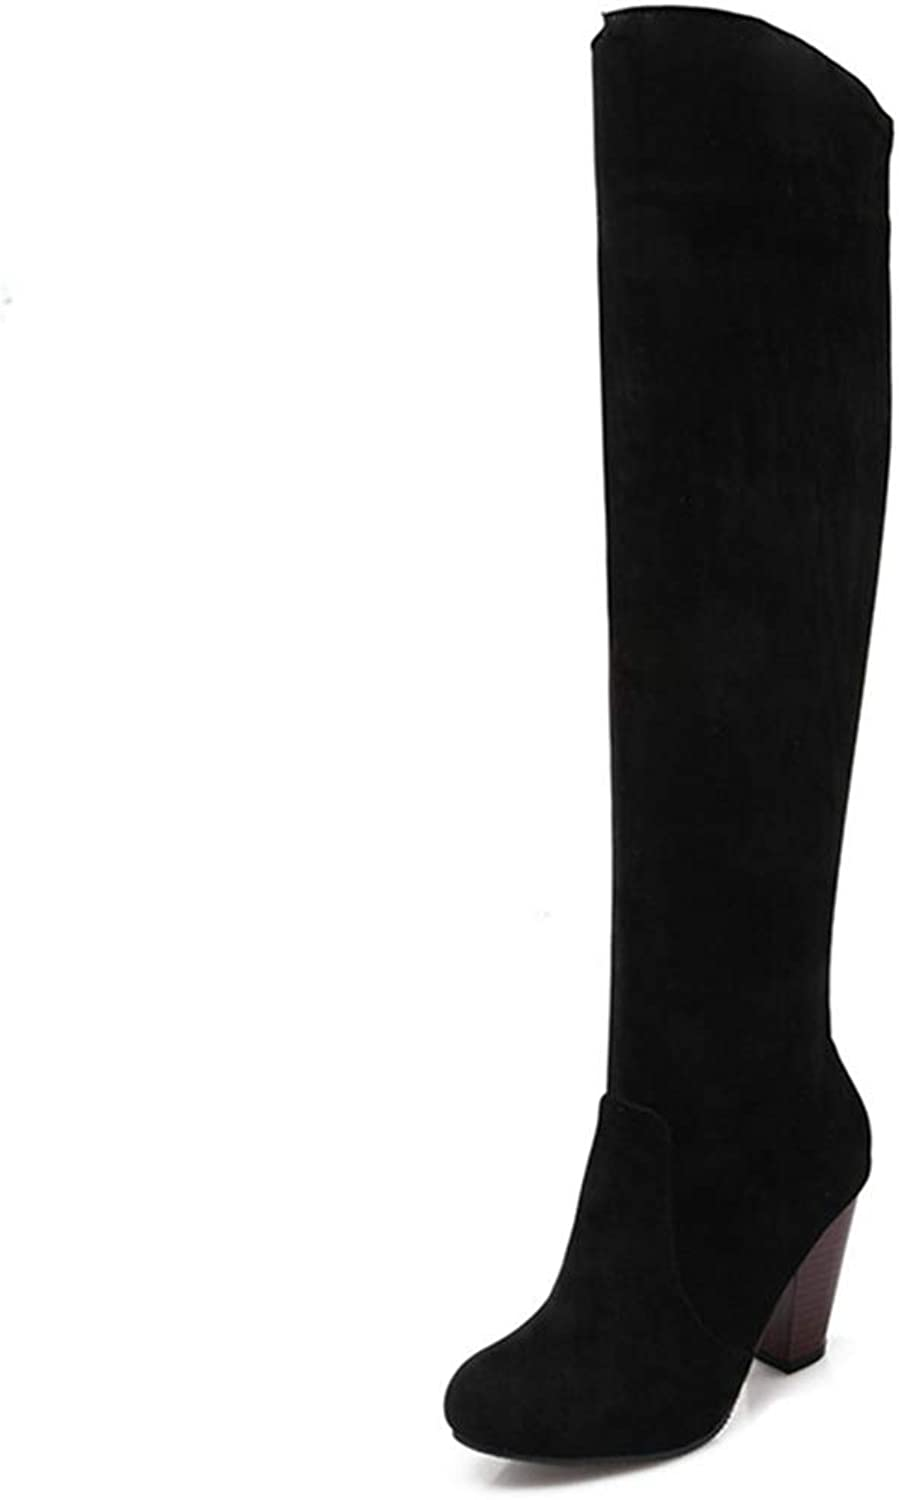 Solid color Over The Knee Boots Slip On Autumn Winter Ladies Thigh High Boots